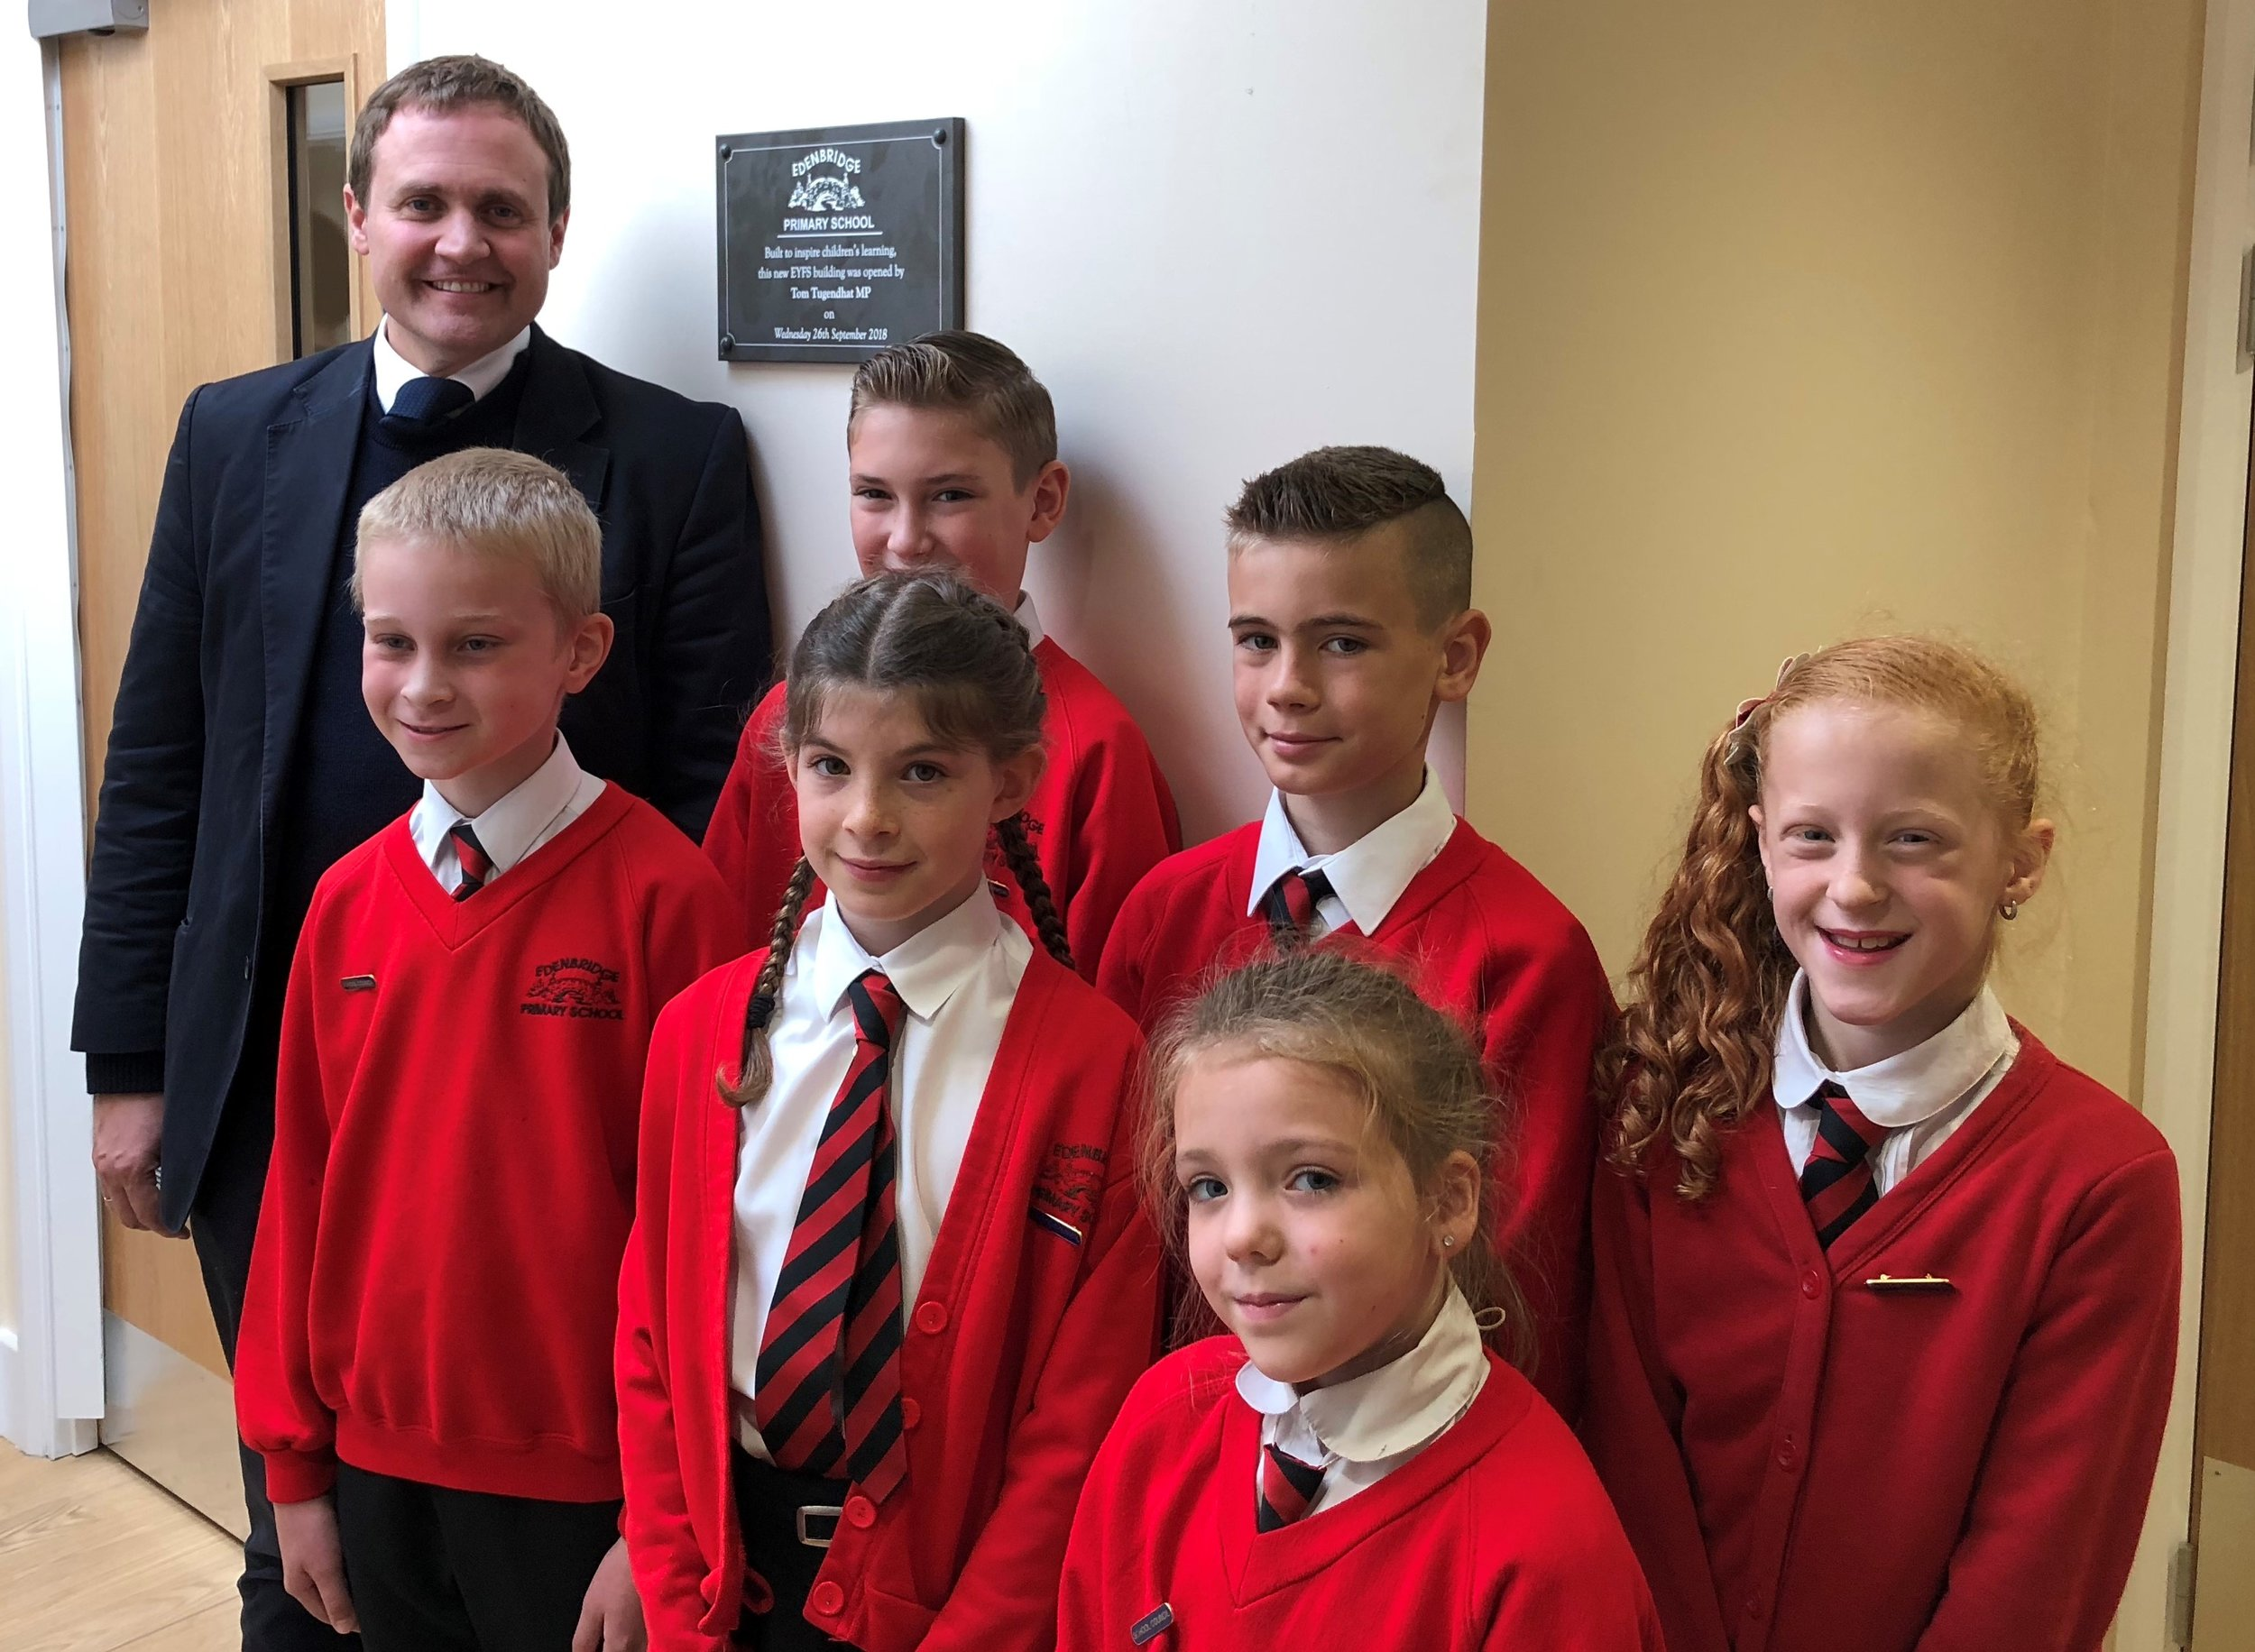 I was delighted to officially open the new classrooms at Edenbridge Primary School yesterday. They are in the process of a complete turnaround and The Pioneer Trust, who now run the school, have an ambitious vision to make the school one of the best in the local area.  It was a pleasure to spend time with them, pupils, and governors and hear just how excited everyone with the progress that can be made at the school.